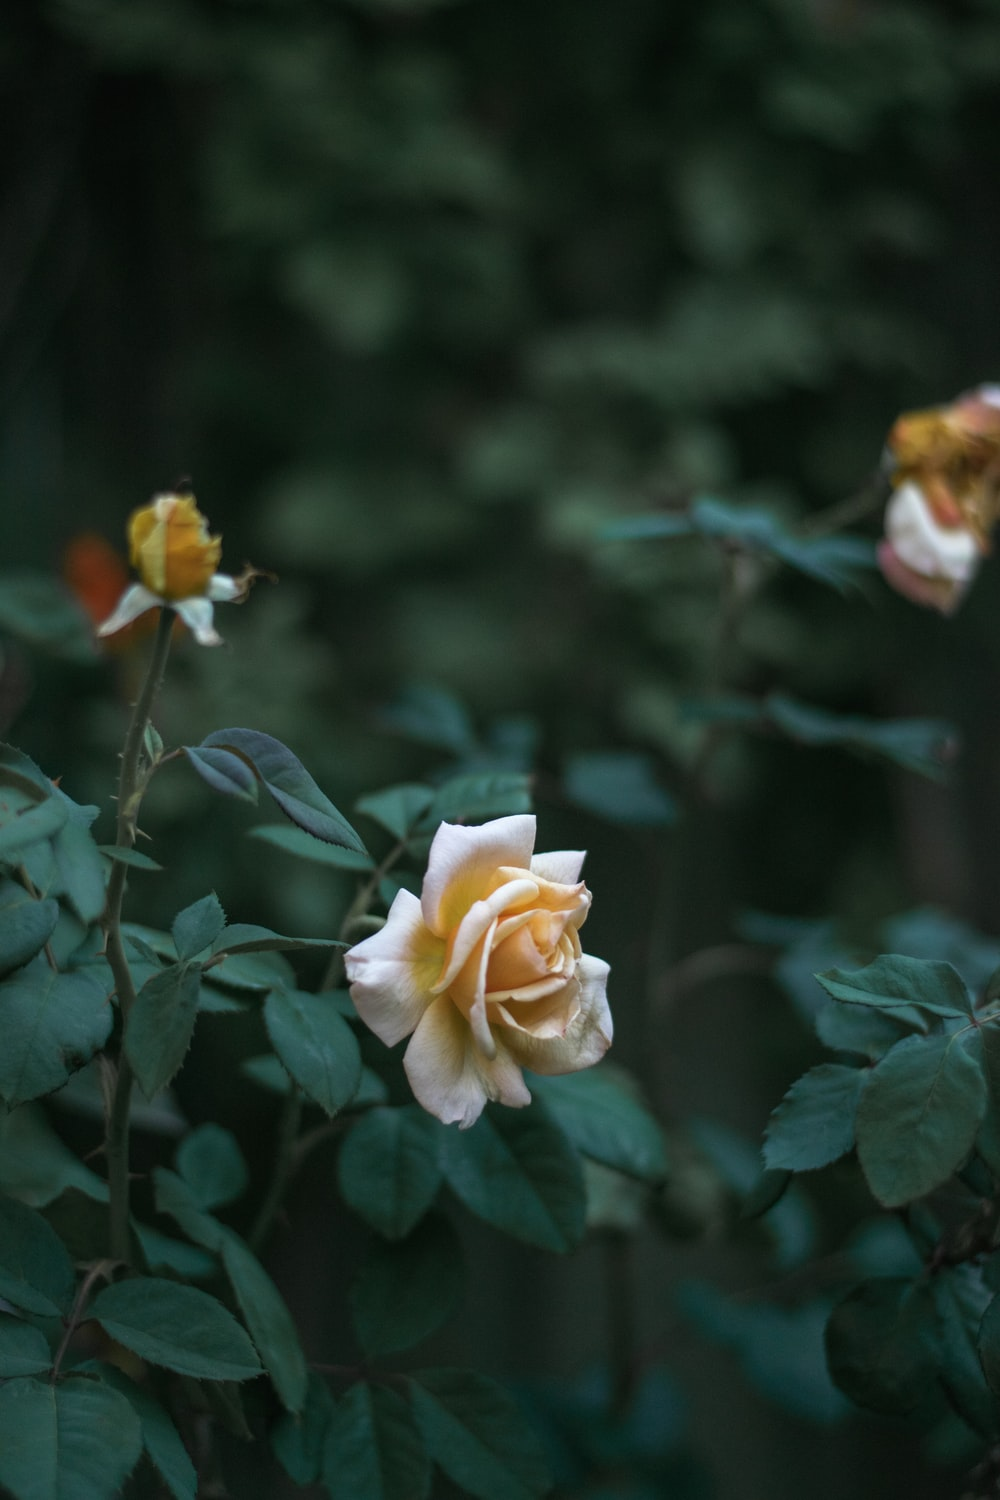 Yellow rose pictures hd download free images on unsplash close up photography of brown rose flower mightylinksfo